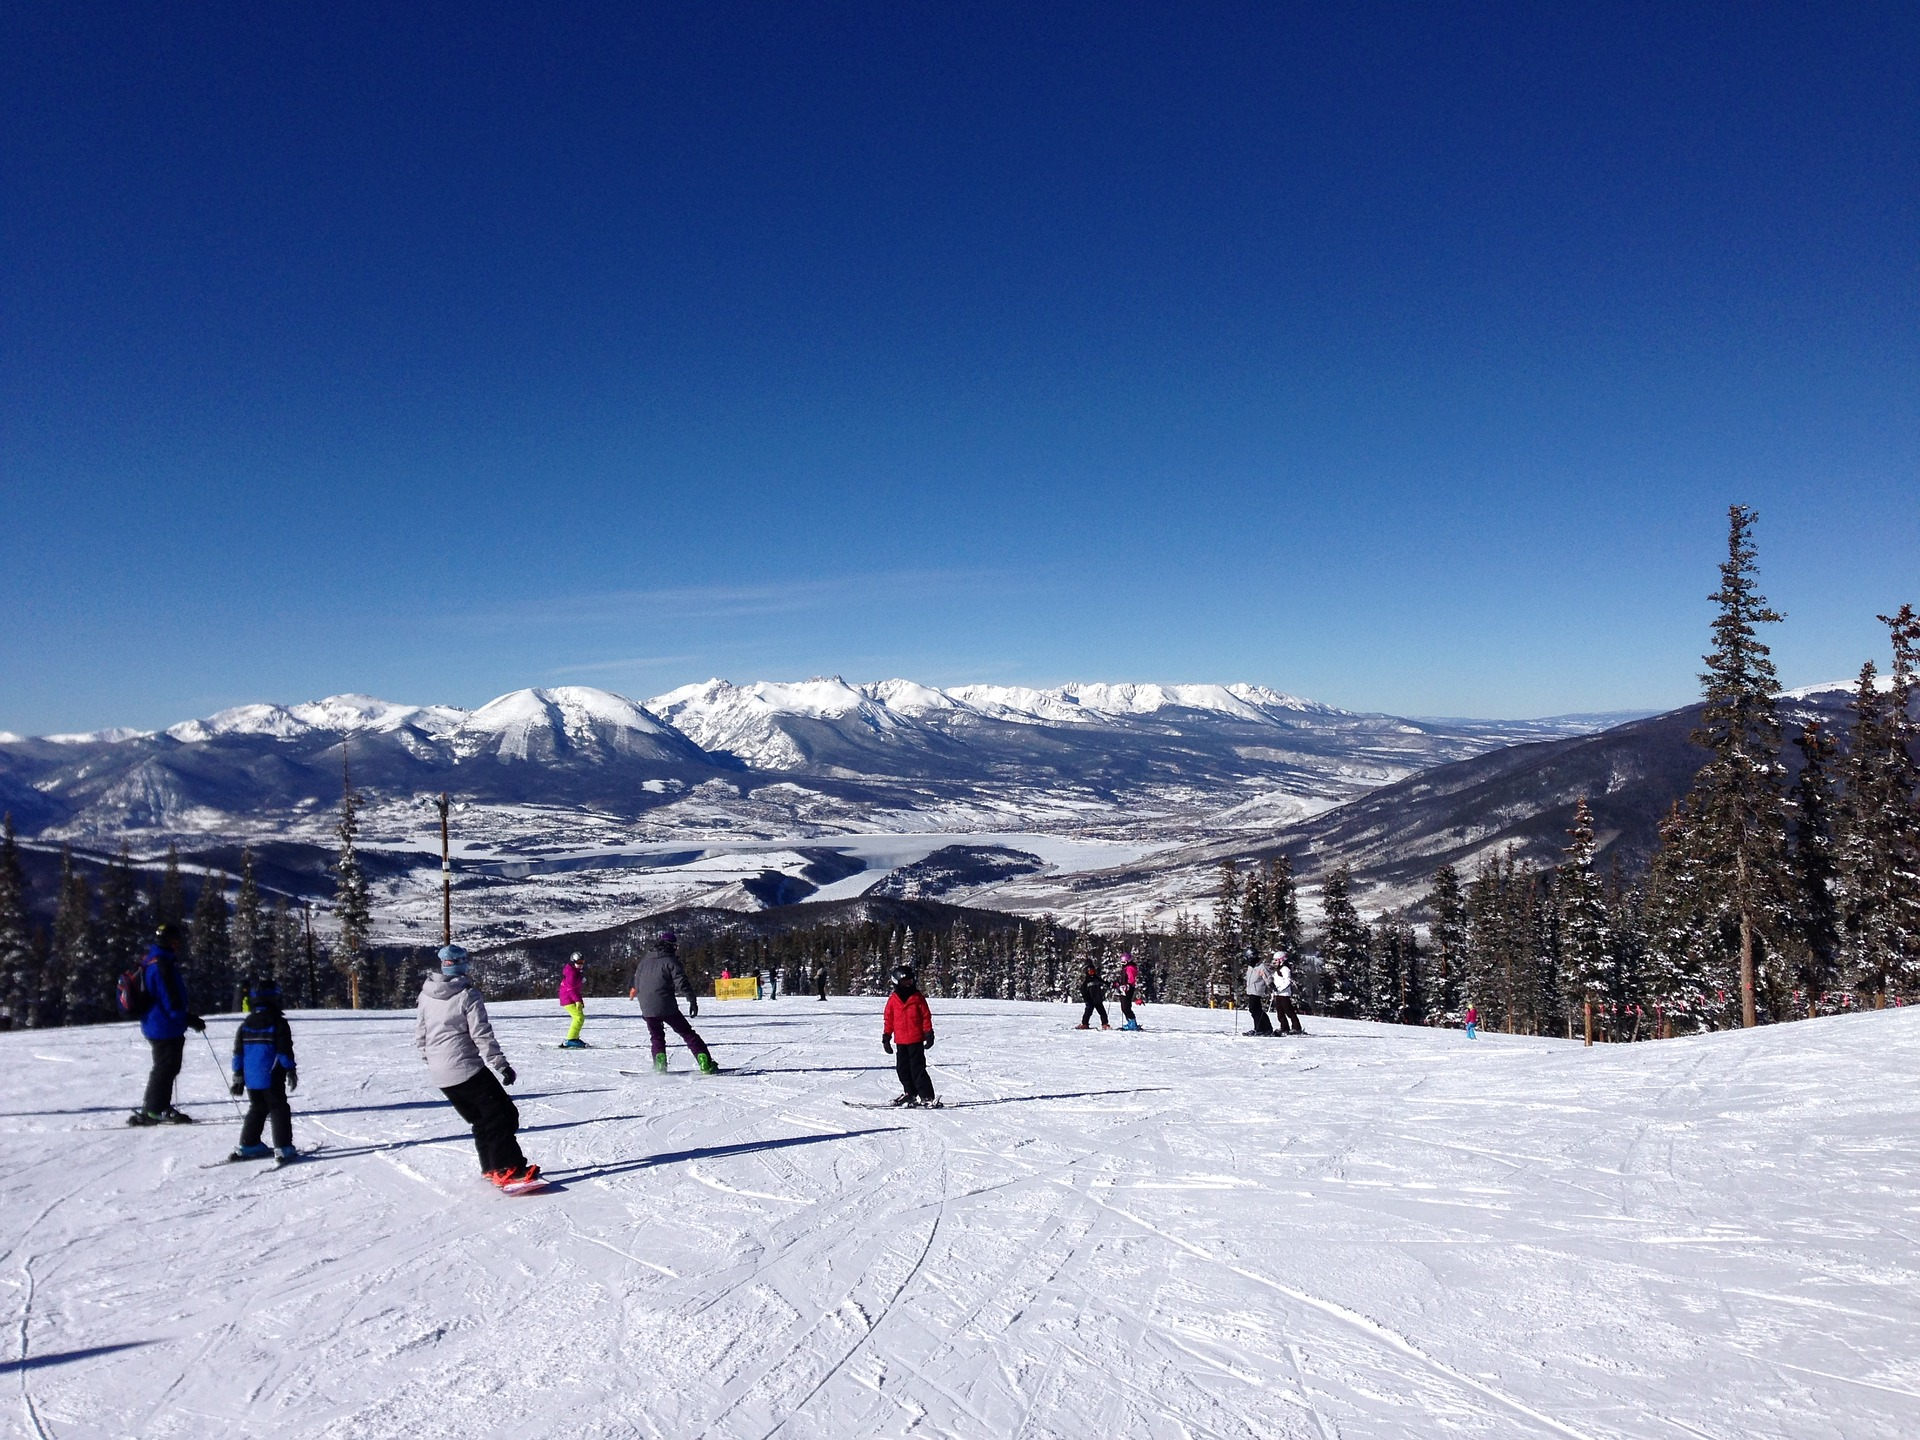 Colorado Travel Guide: 10 Amazing Colorado Experiences That Shouldn't Be Missed